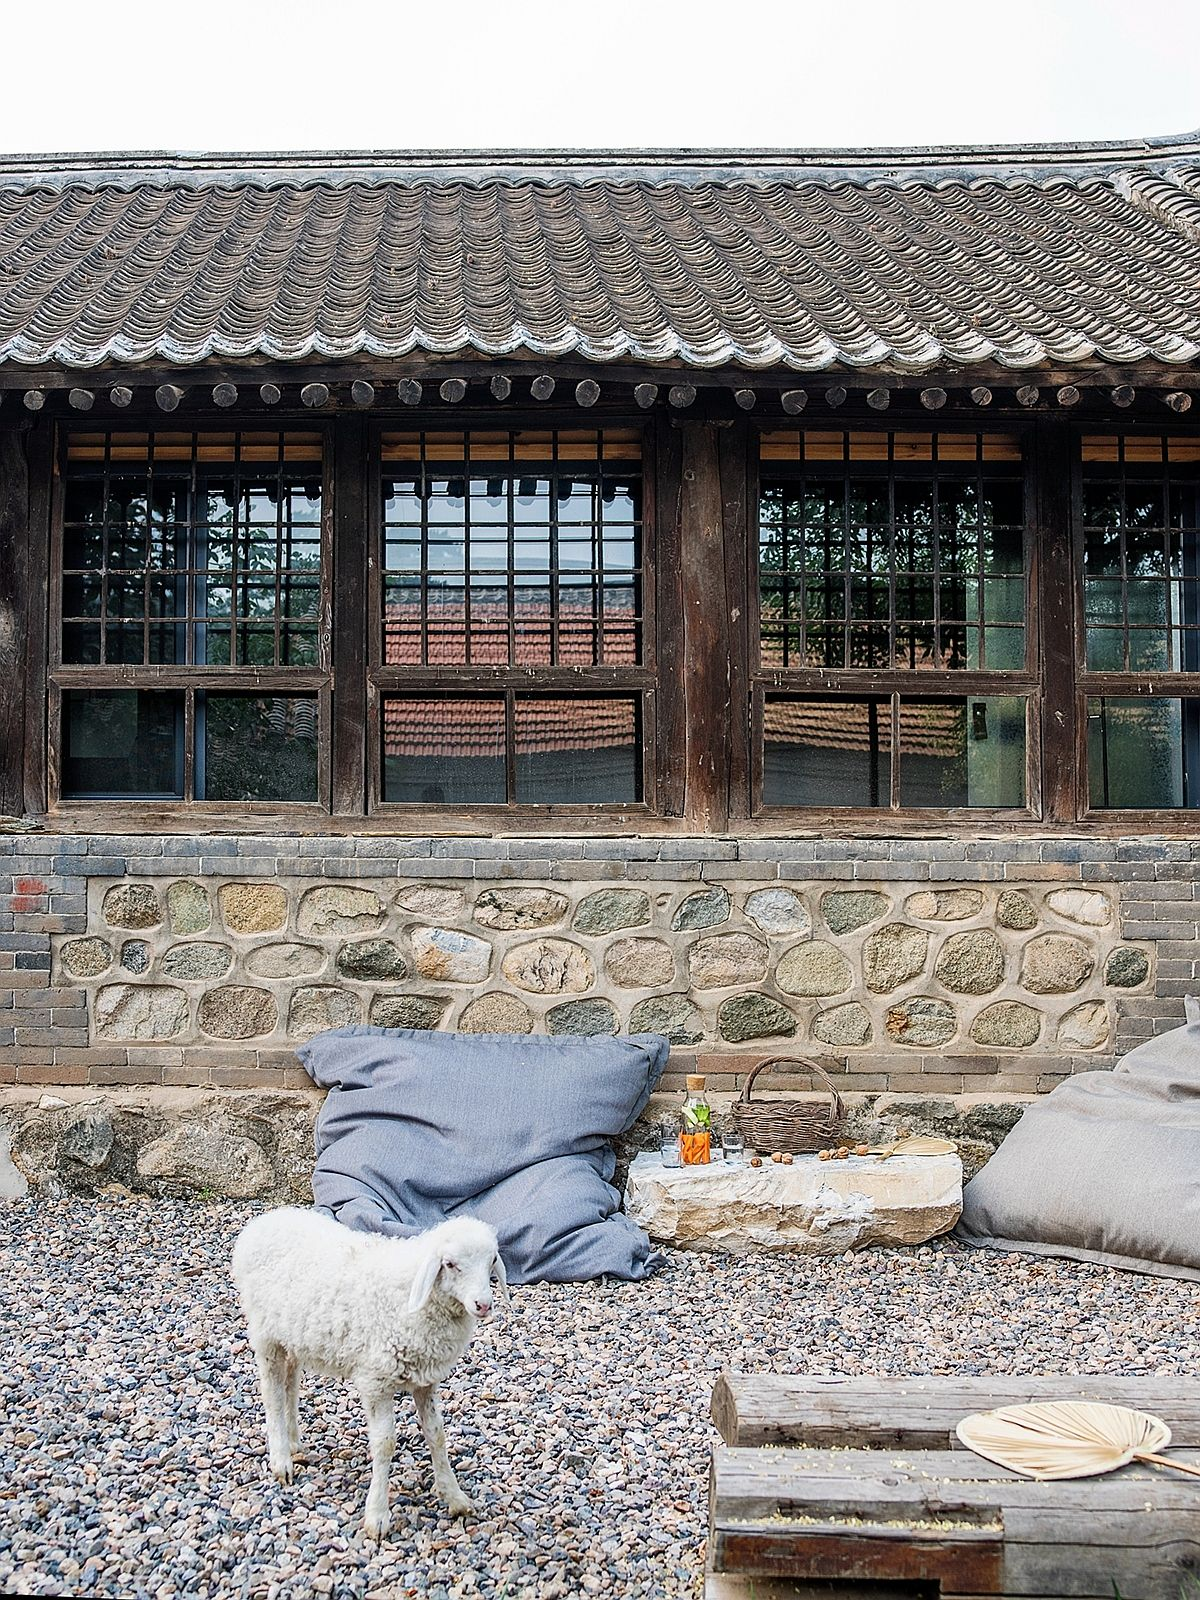 Stone walls, terracotta tiles and earthen walls of the rustic Chinese home